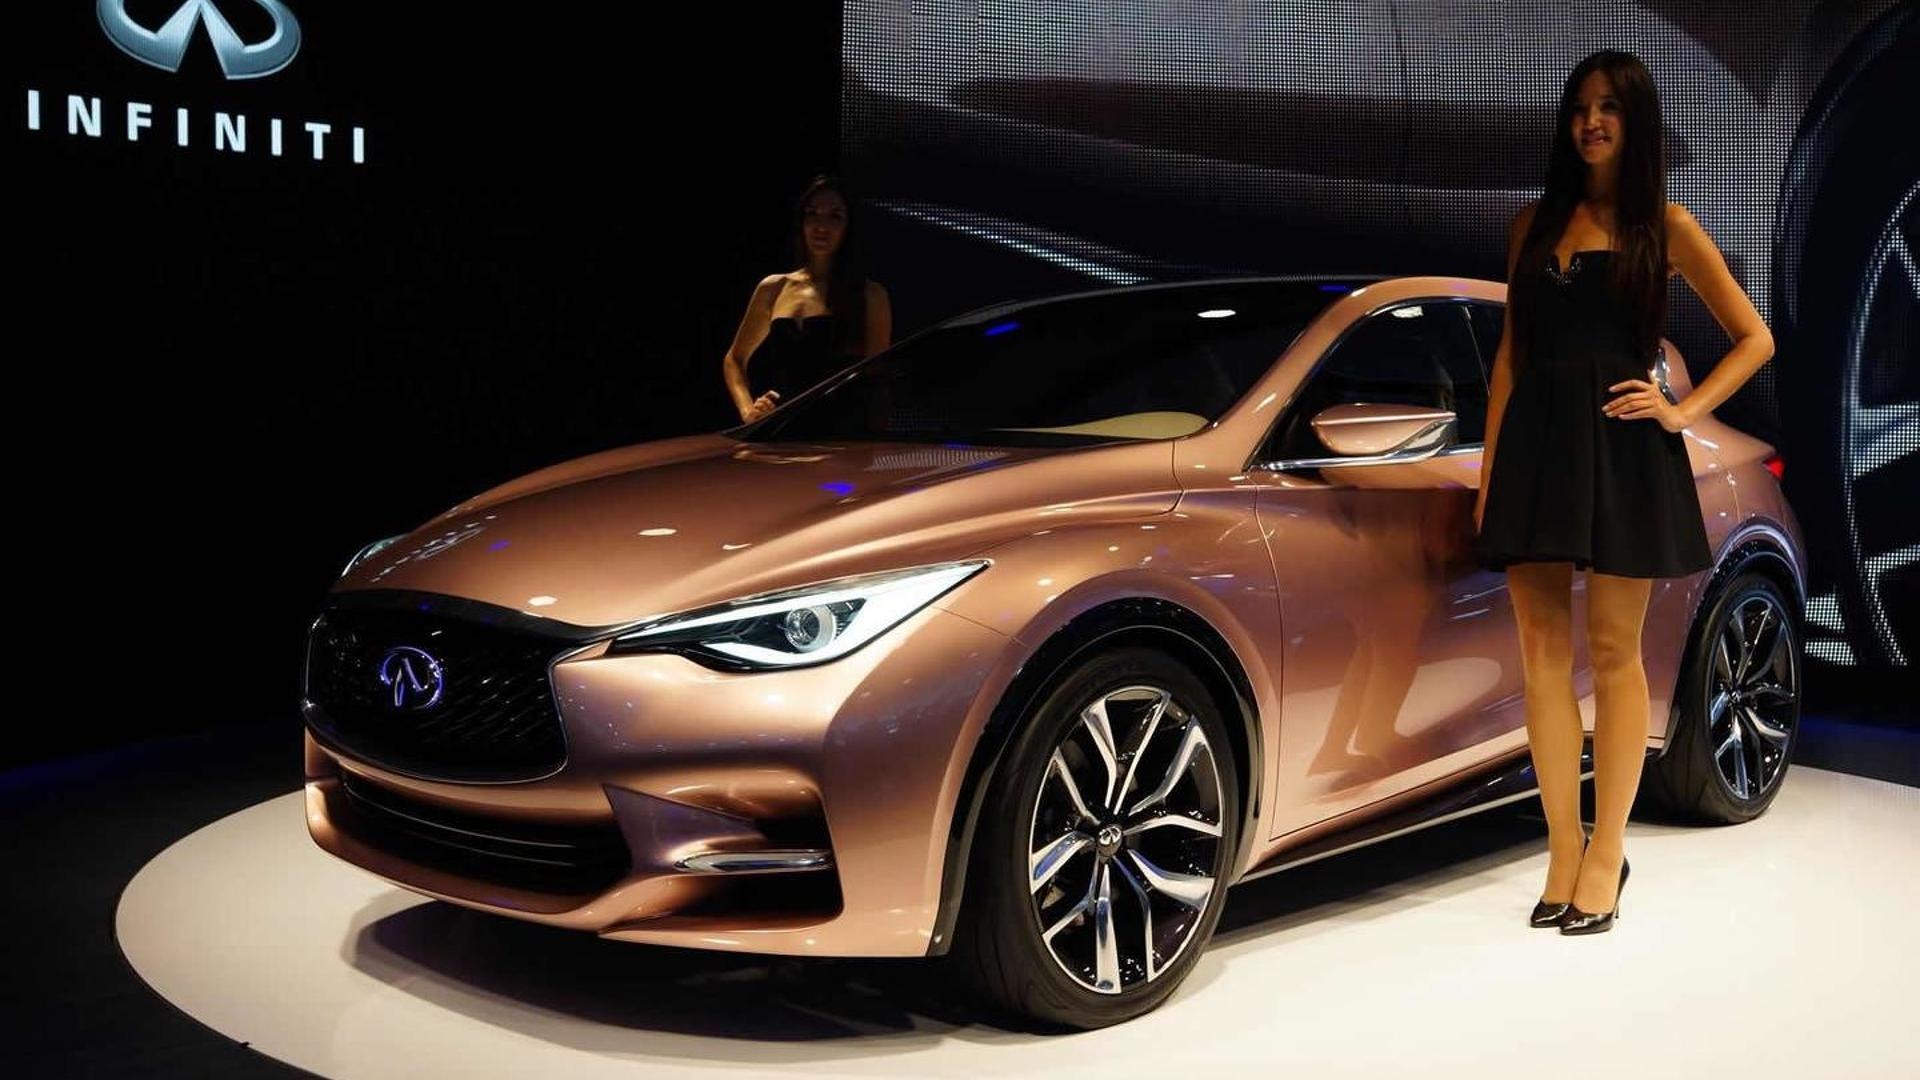 Infiniti to expand lineup by 60% over next five years - report